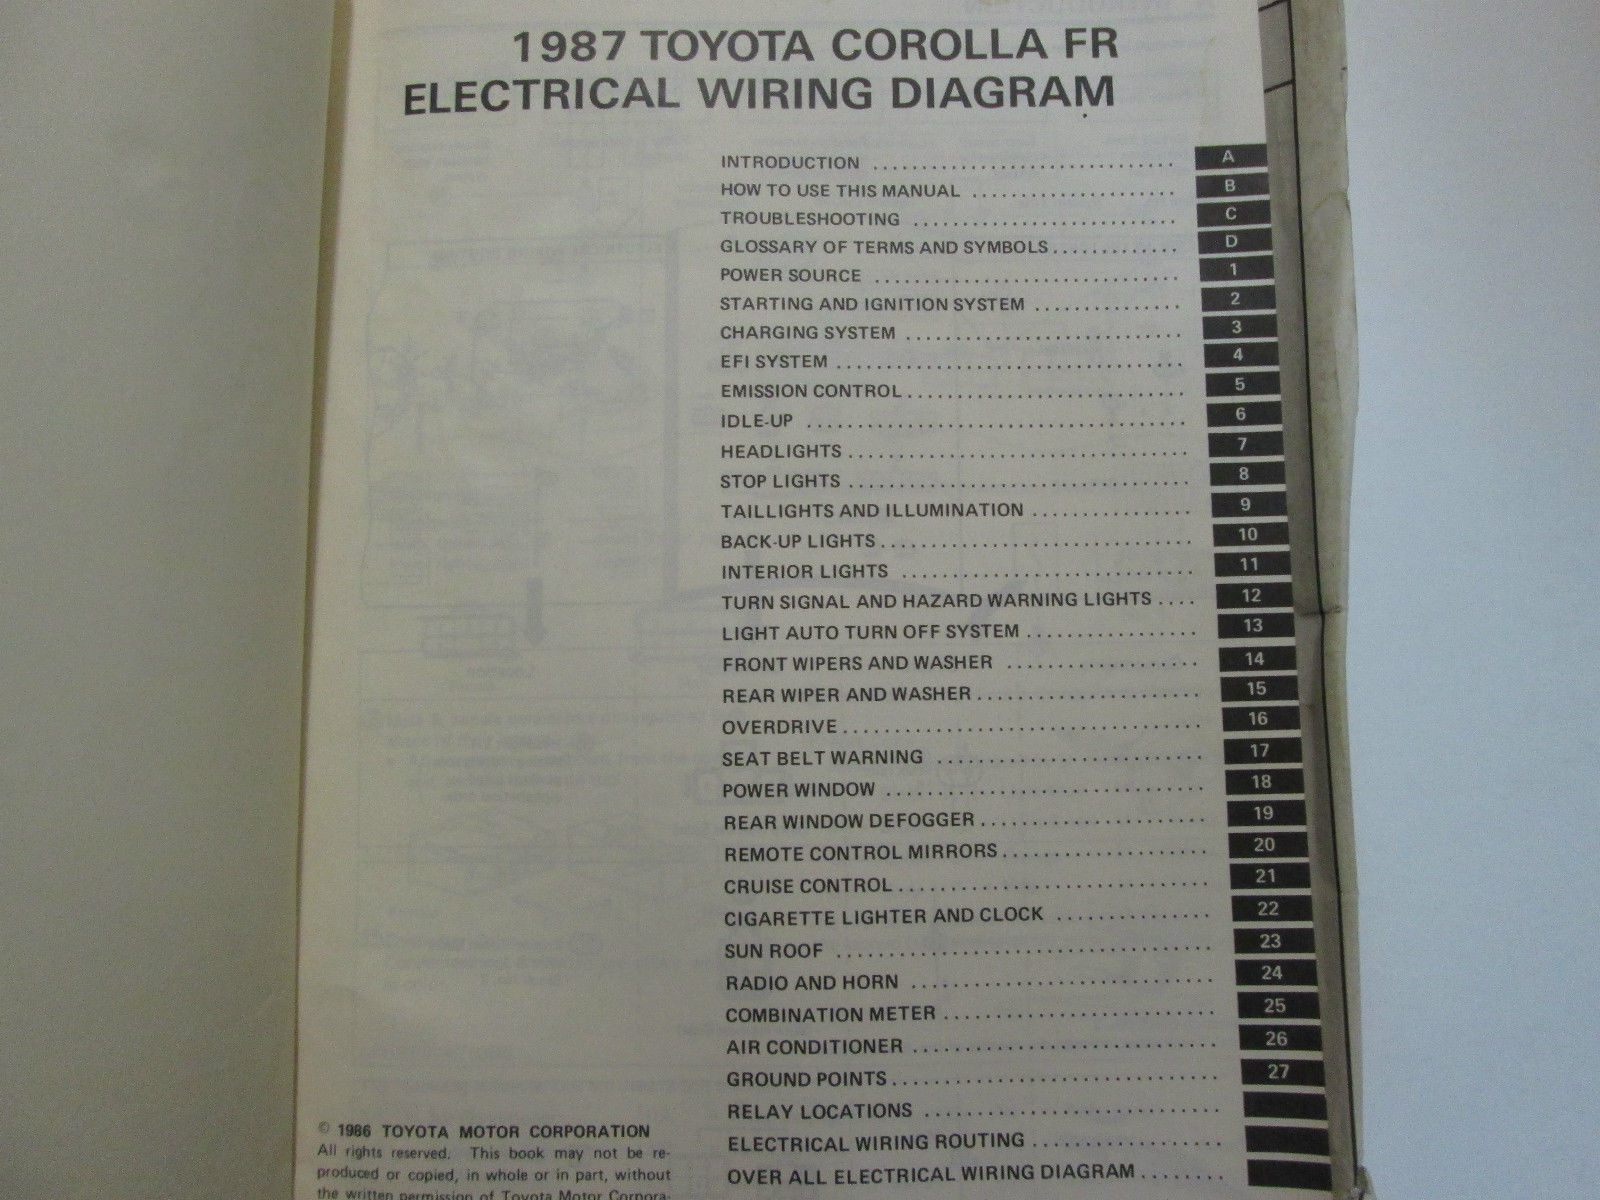 1987 Toyota Corolla Fr Electrical Wiring And 39 Similar Items Diagram Service Repair Manual Used Wear